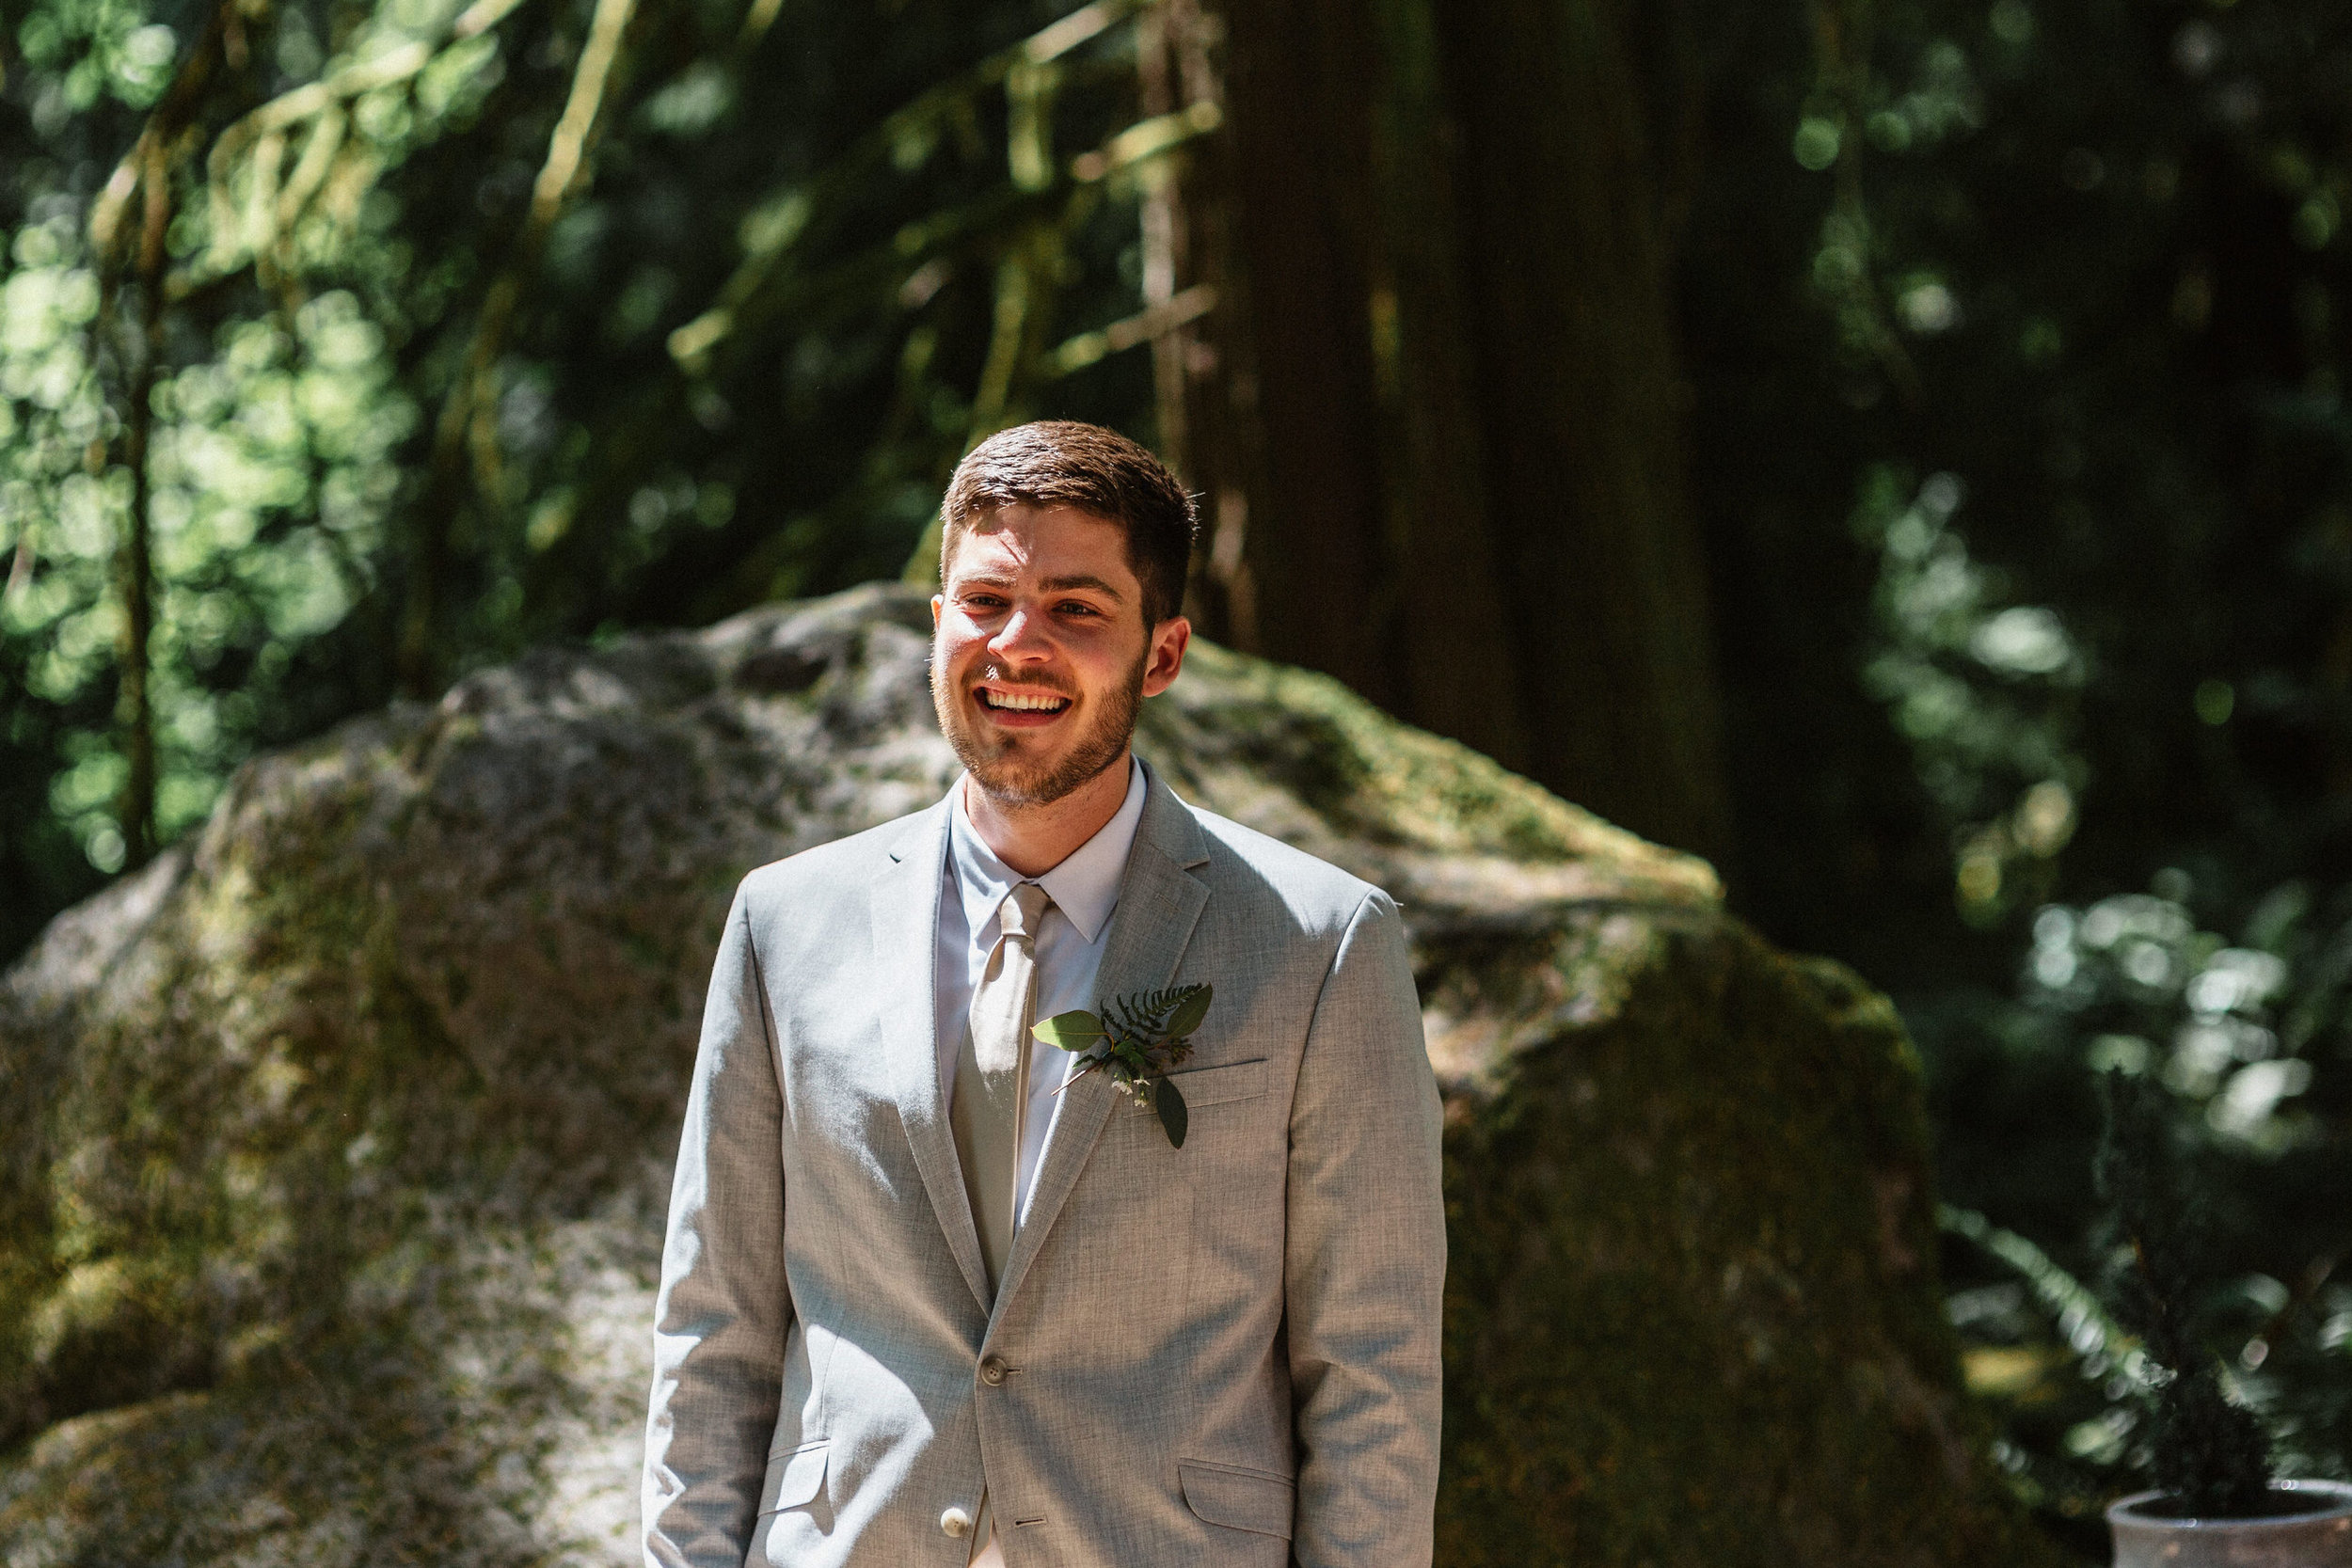 MT Hood Wildwood elopement wedding oregon portland photography0008.JPG